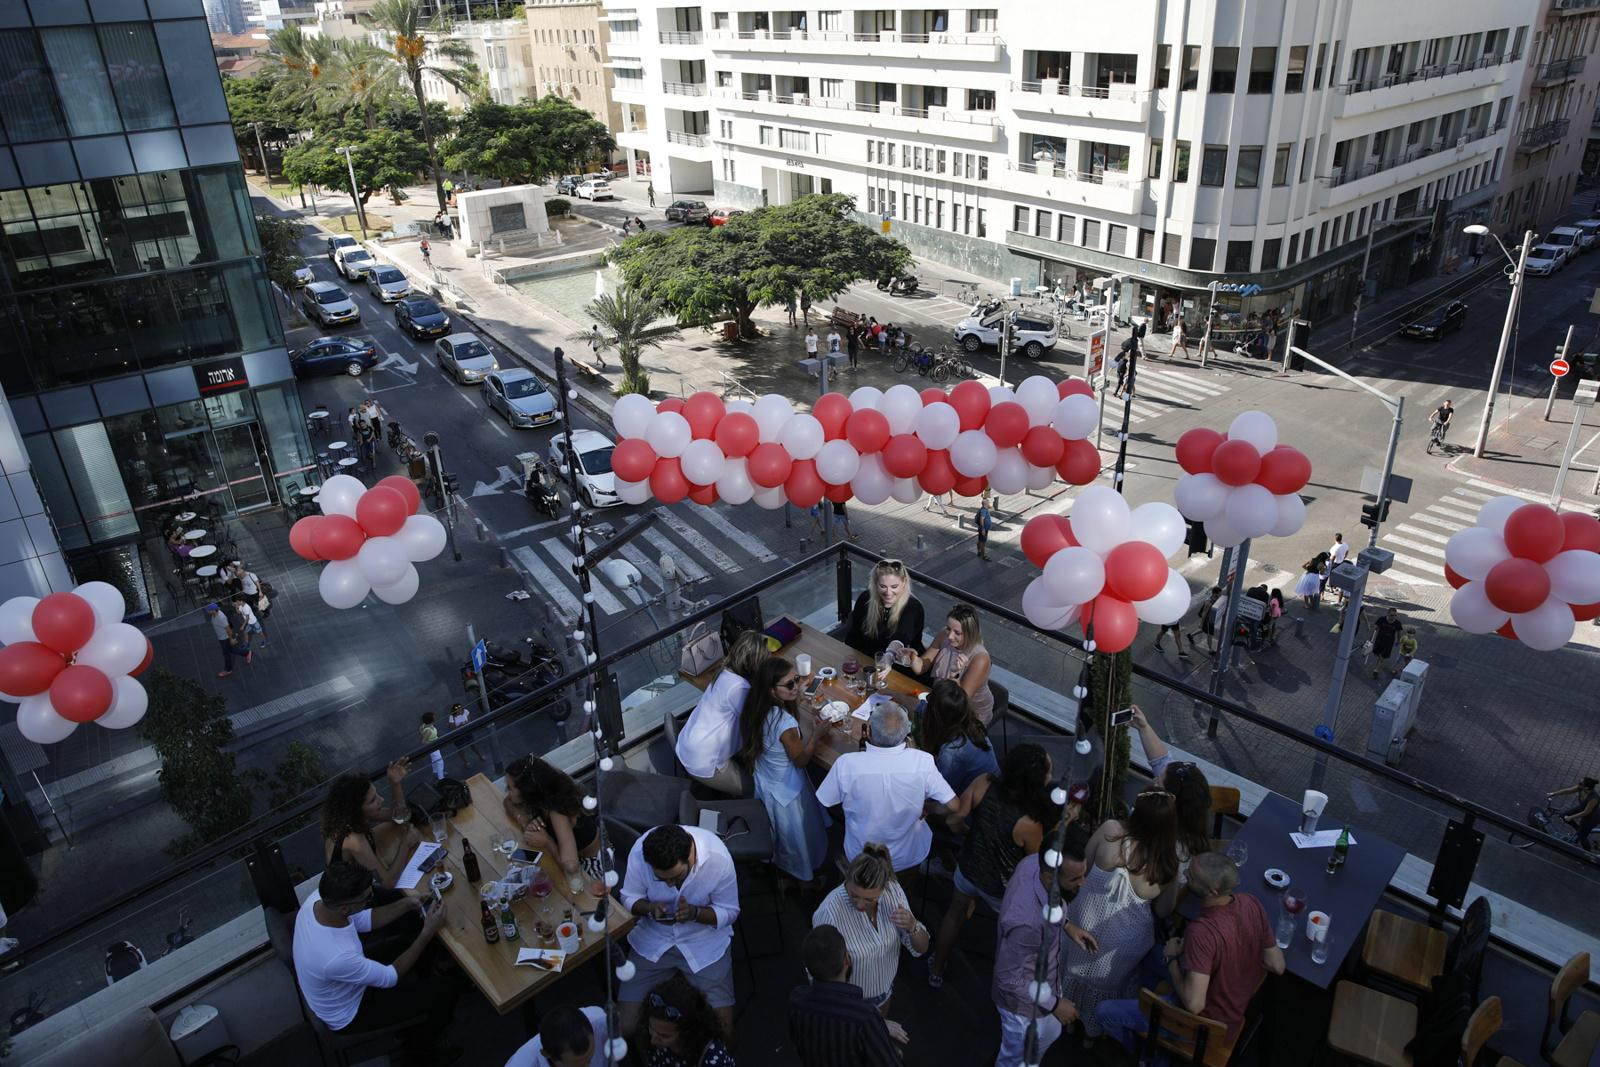 People celebrate a birthday party on the rooftop of the 'Speak Easy Bar', October 13, 2017, Tel Aviv, Israel.